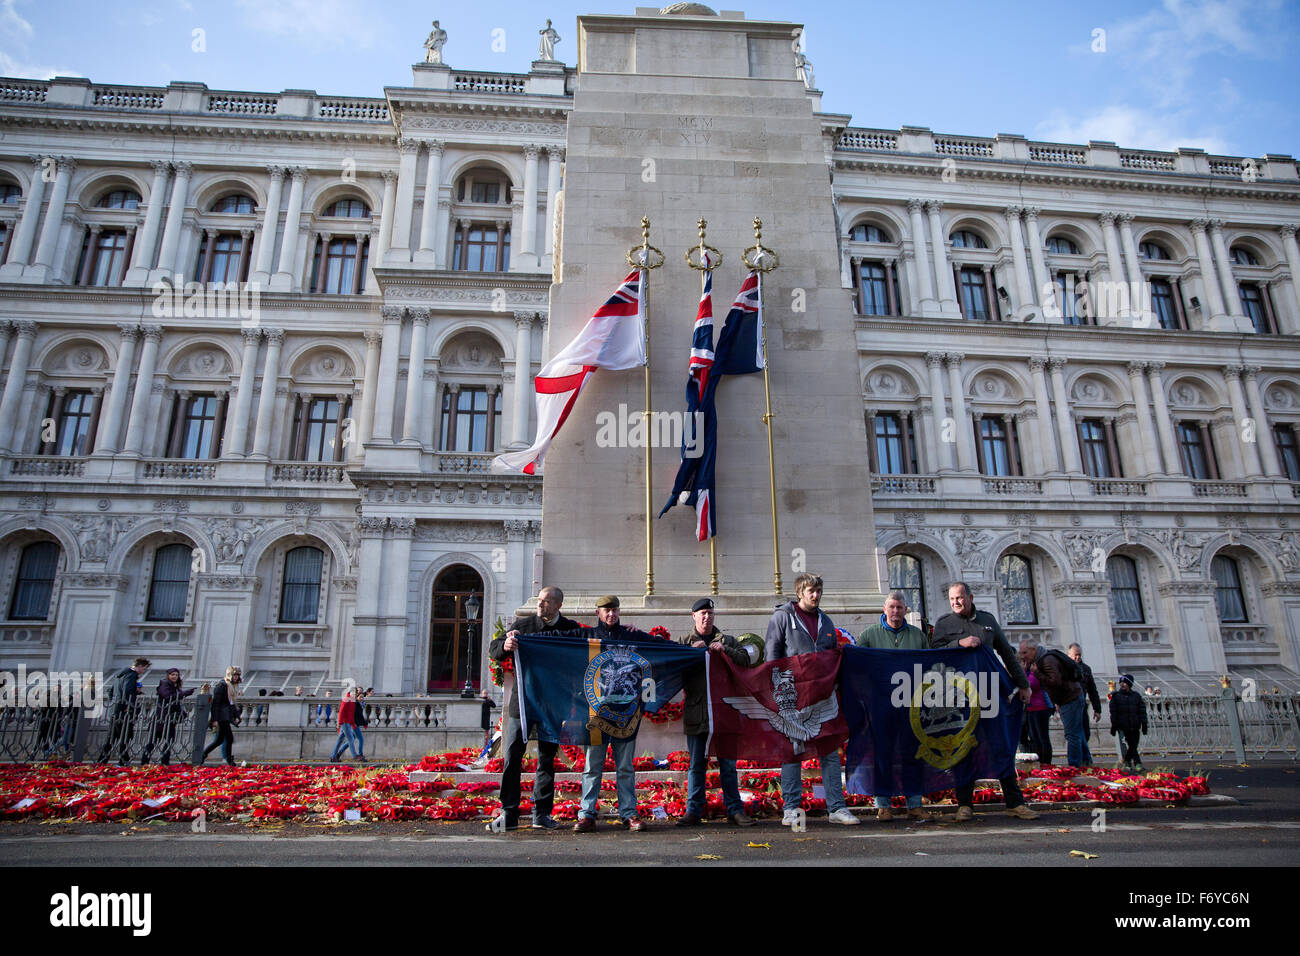 London, UK. 21st Nov, 2015. British military veterans pay their respects in front of the Cenotaph in Whitehall before - Stock Image